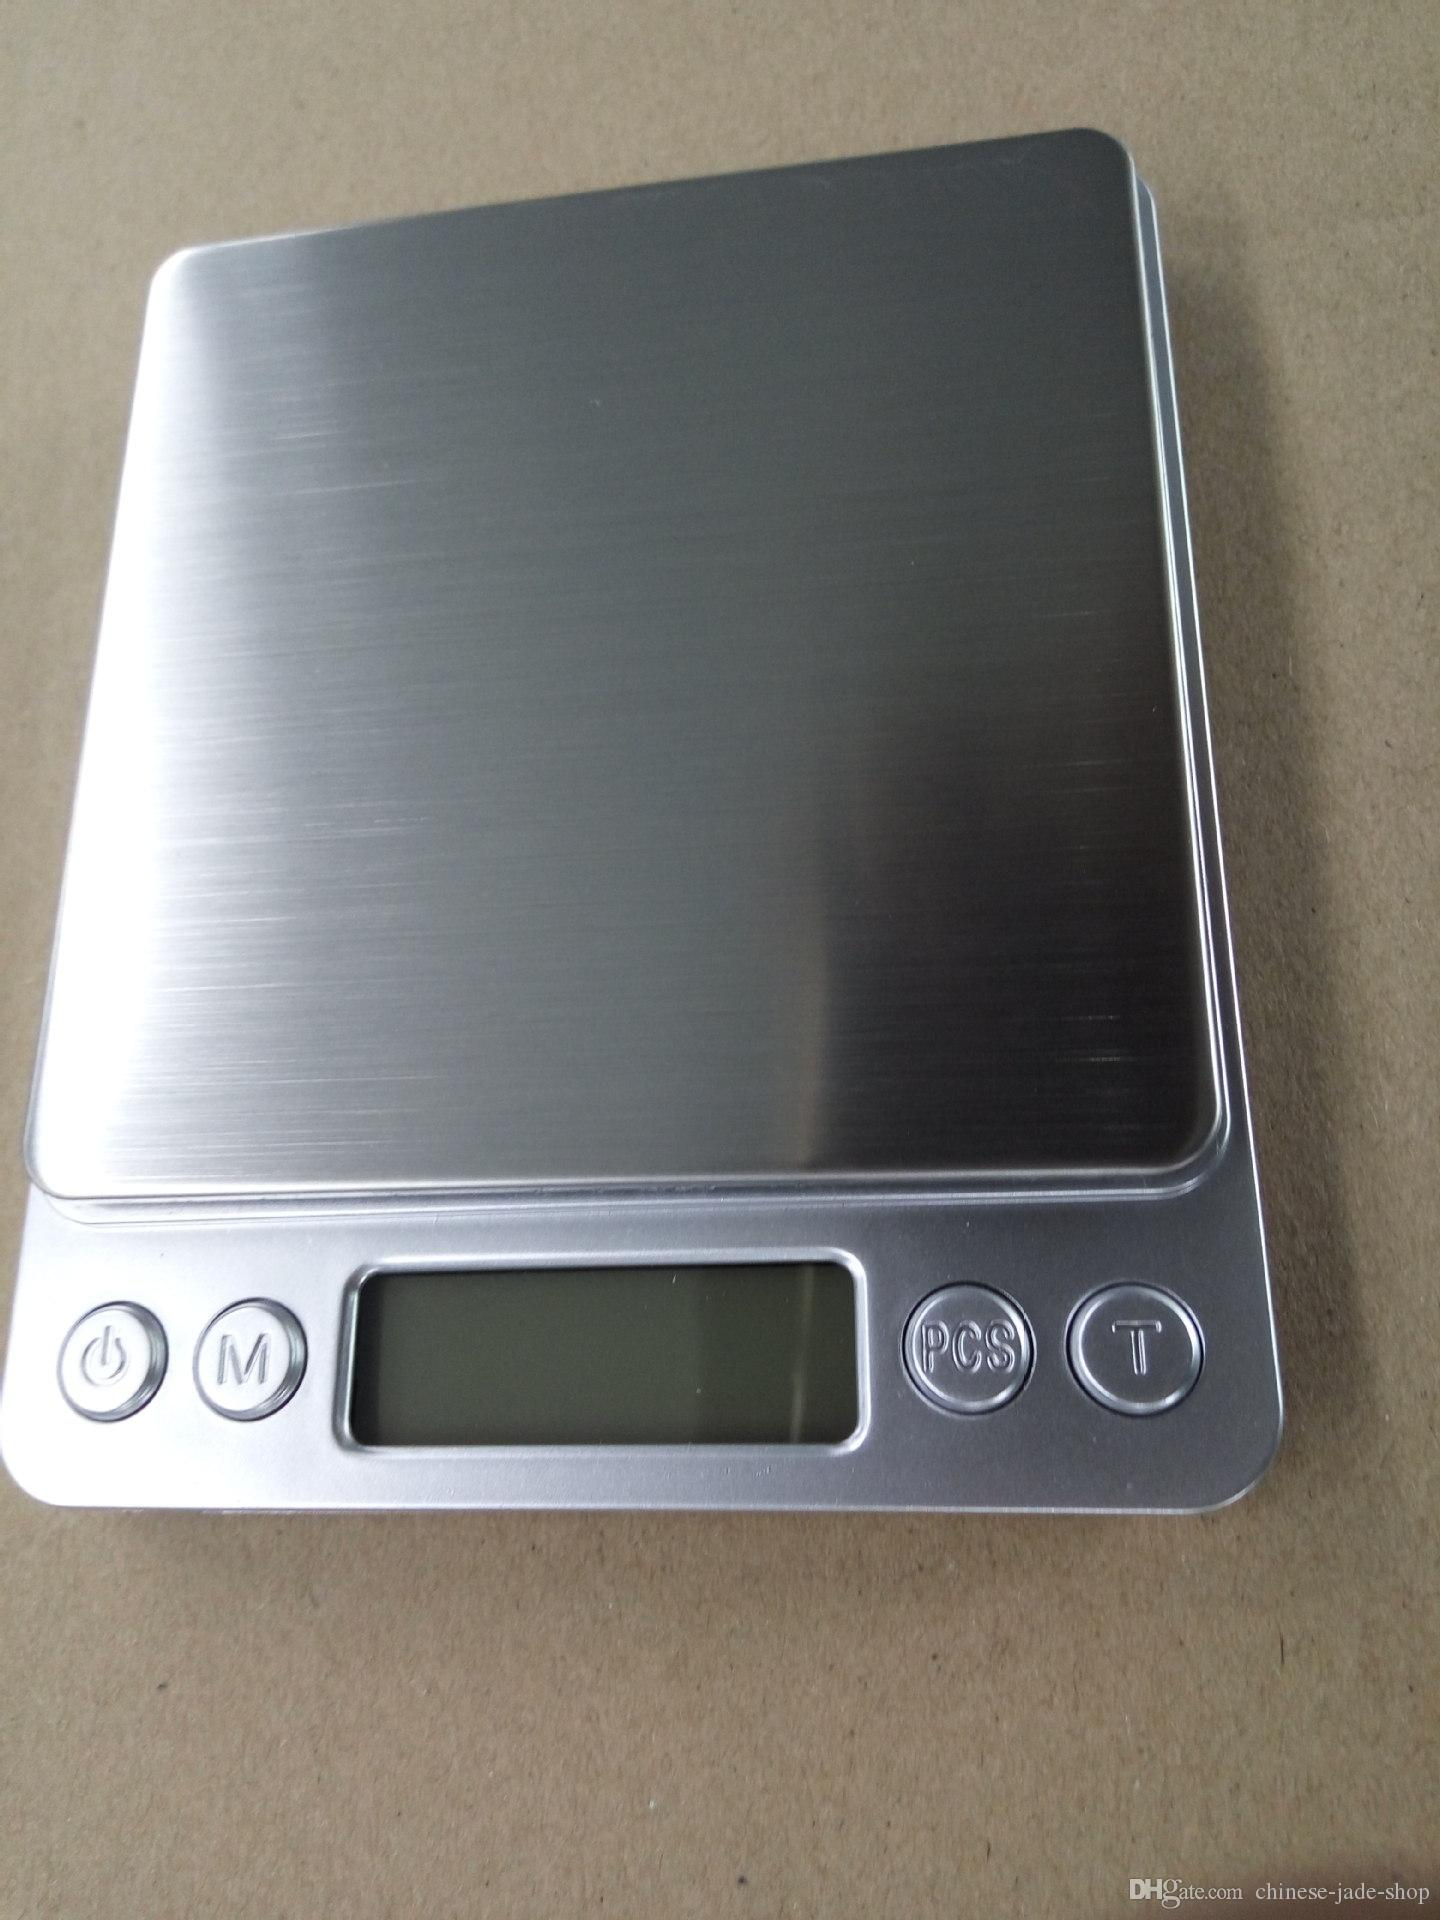 2019 i2000 1kg 2kg 3kg 0 1g digital electronic kitchen scale balance cuisine lcd from chinese jade shop 6 04 dhgate com